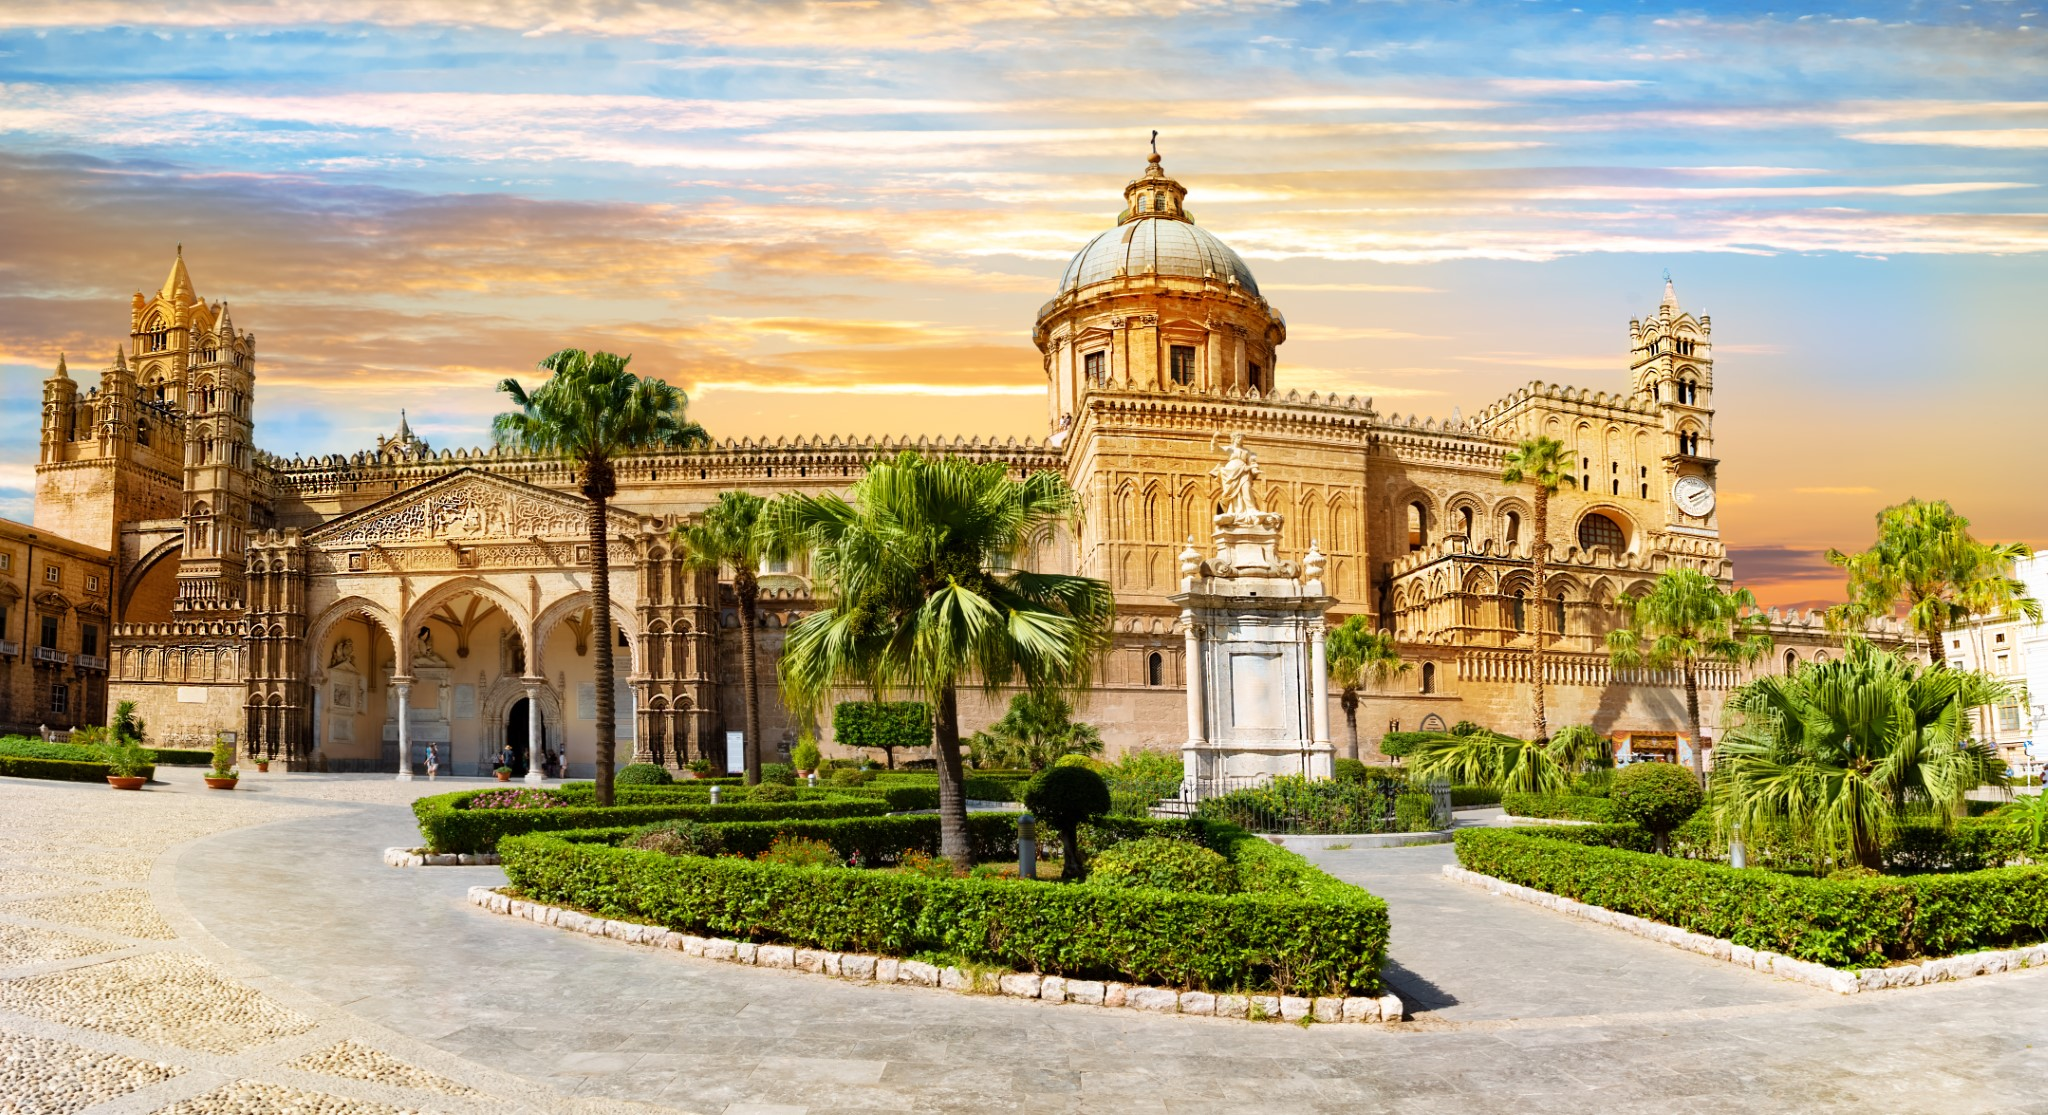 Panoramic view of cathedral church of the Roman Catholic Archdiocese of Palermo in Sicily - Italy.